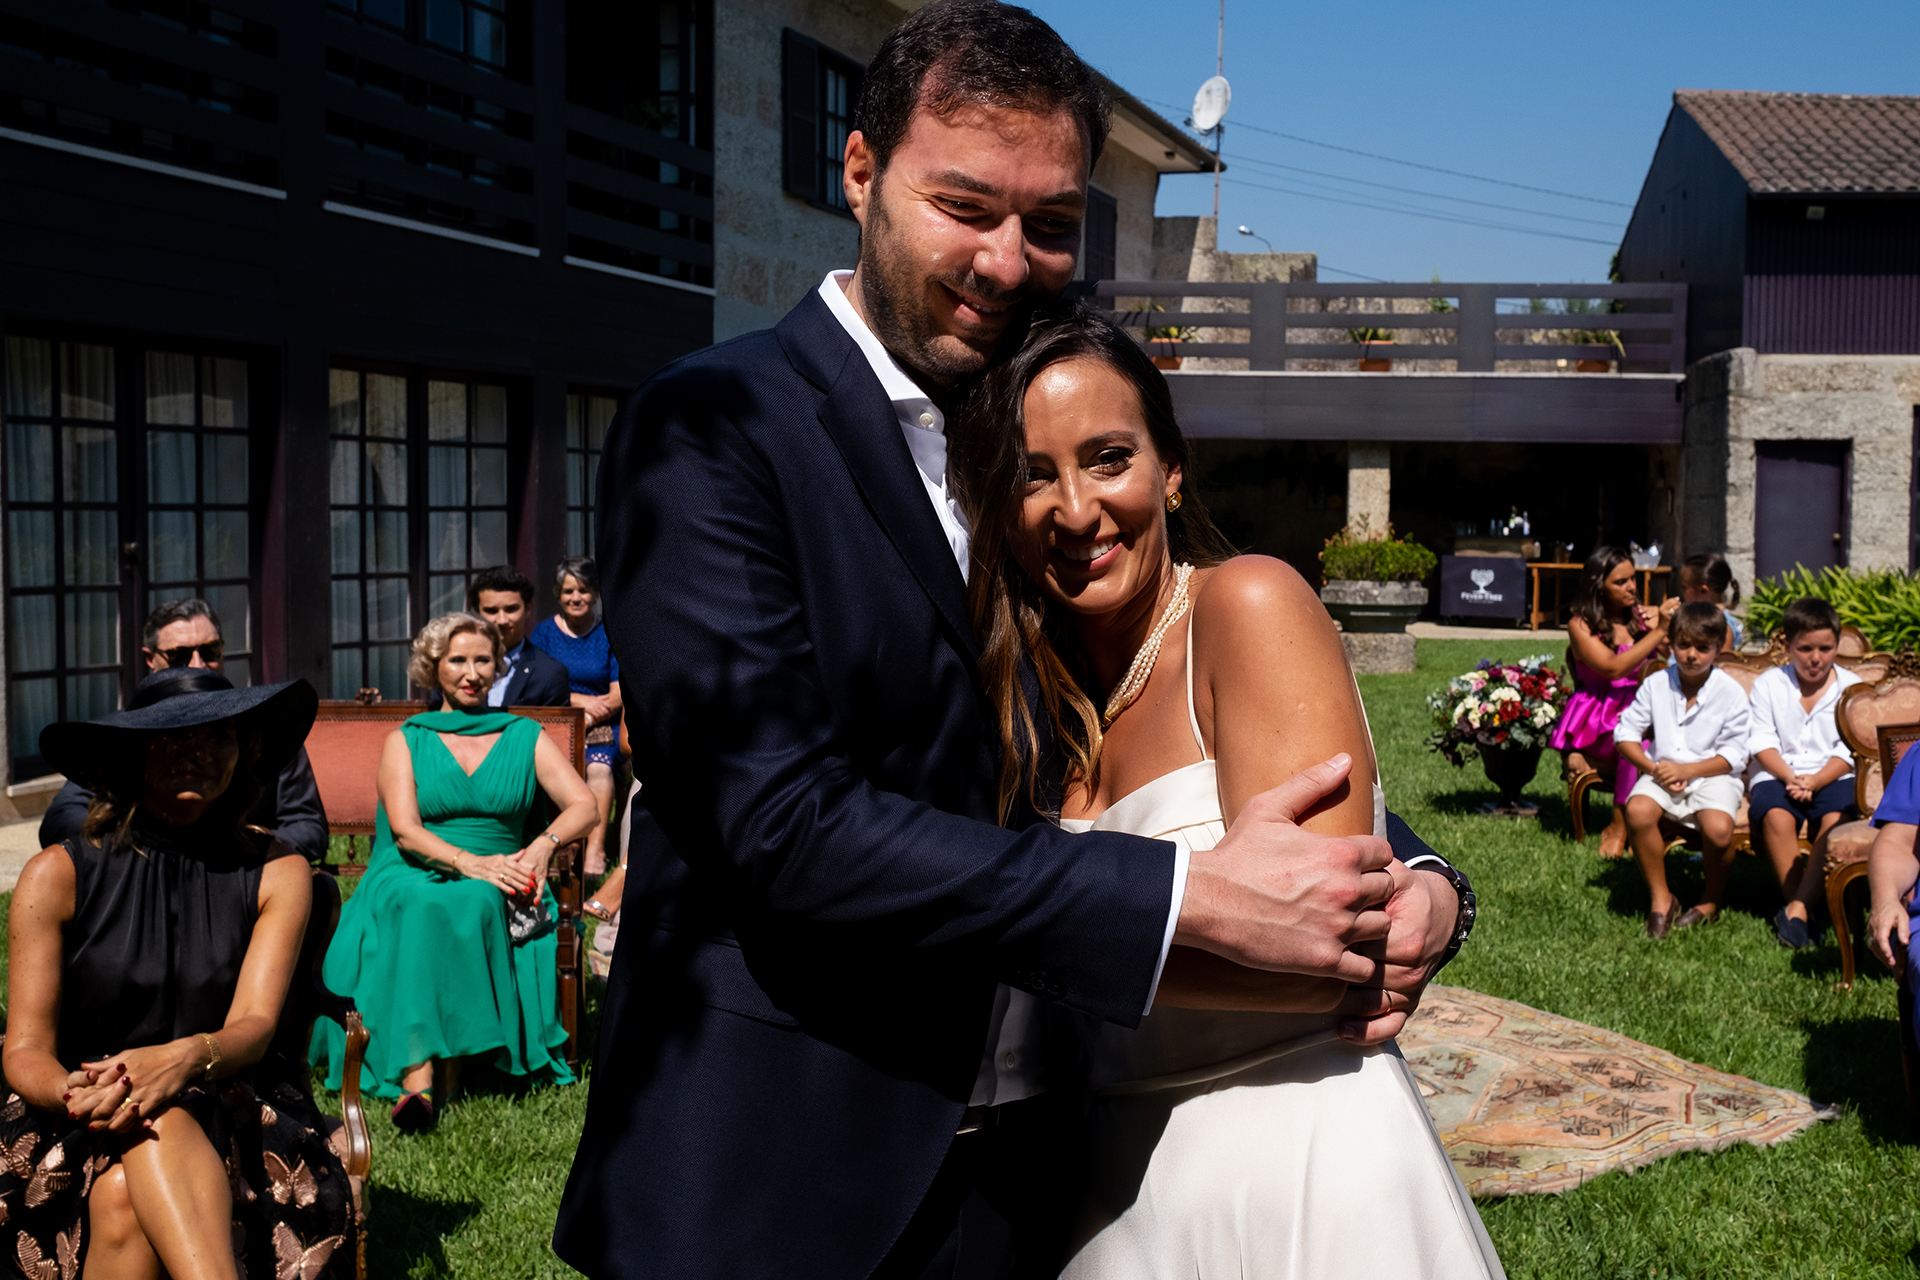 Wedding Photography of Portugal | The bride and groom share a playful hug after they exchange their rings